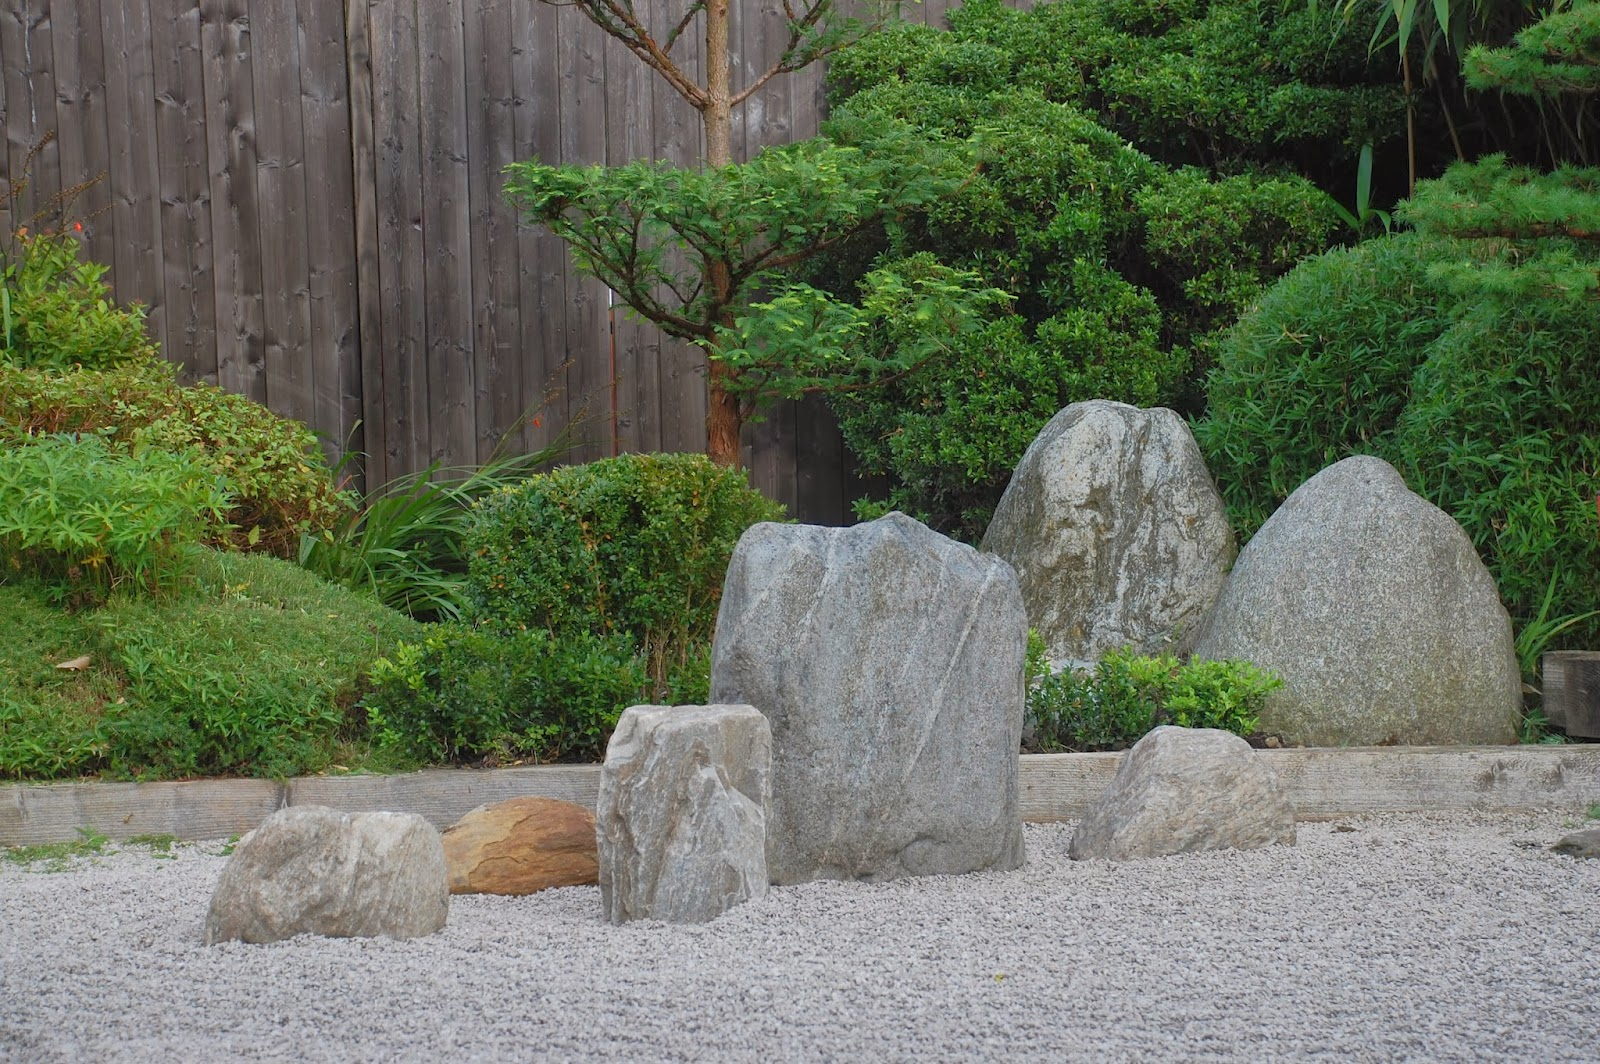 Robert ketchell 39 s blog arranging stones in a japanese for Japanese stone garden